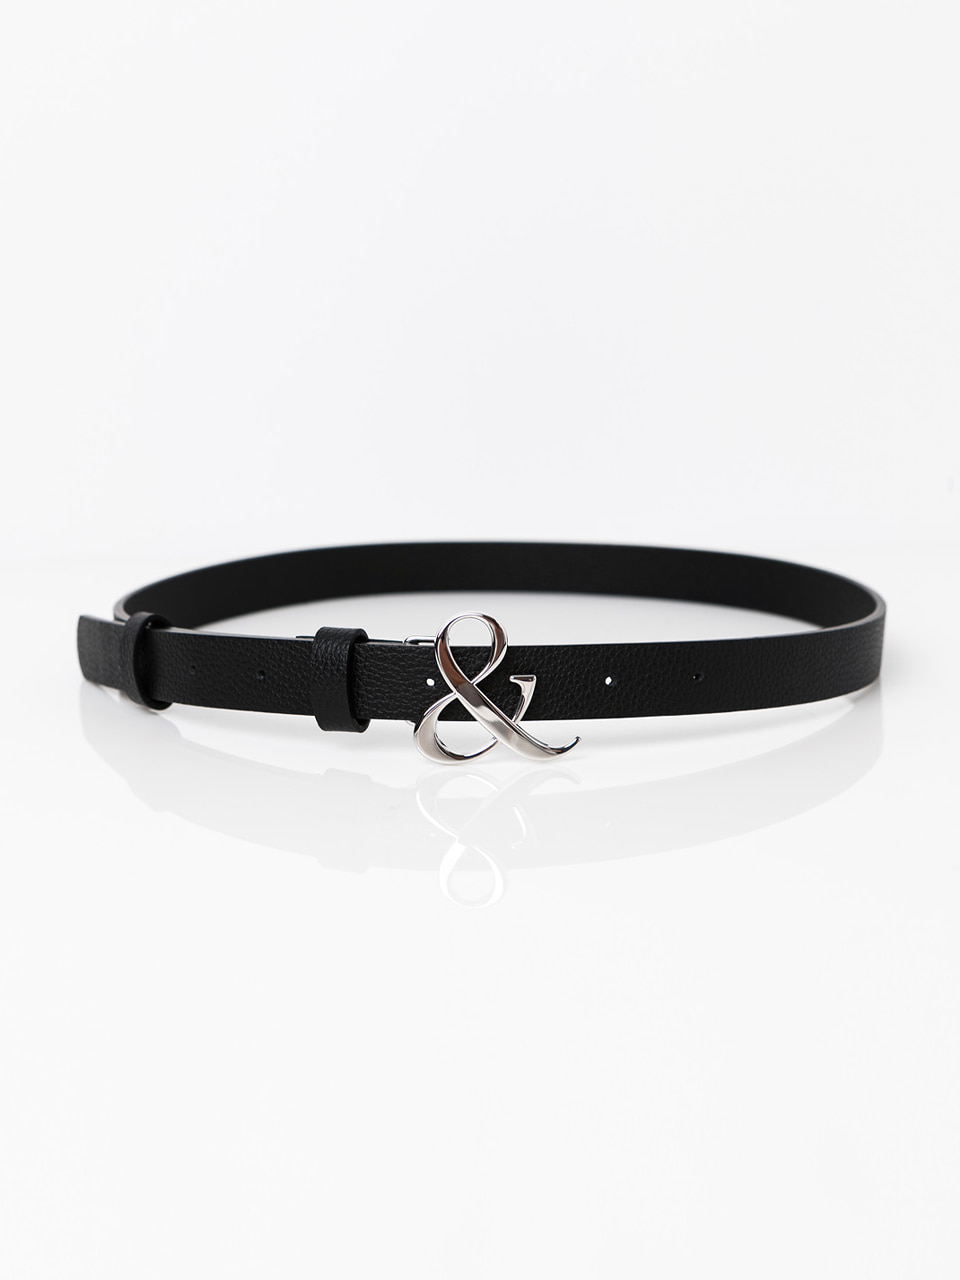 [ABCME5002M] AMPERSAND BUCKLE SLIM BELT_BK